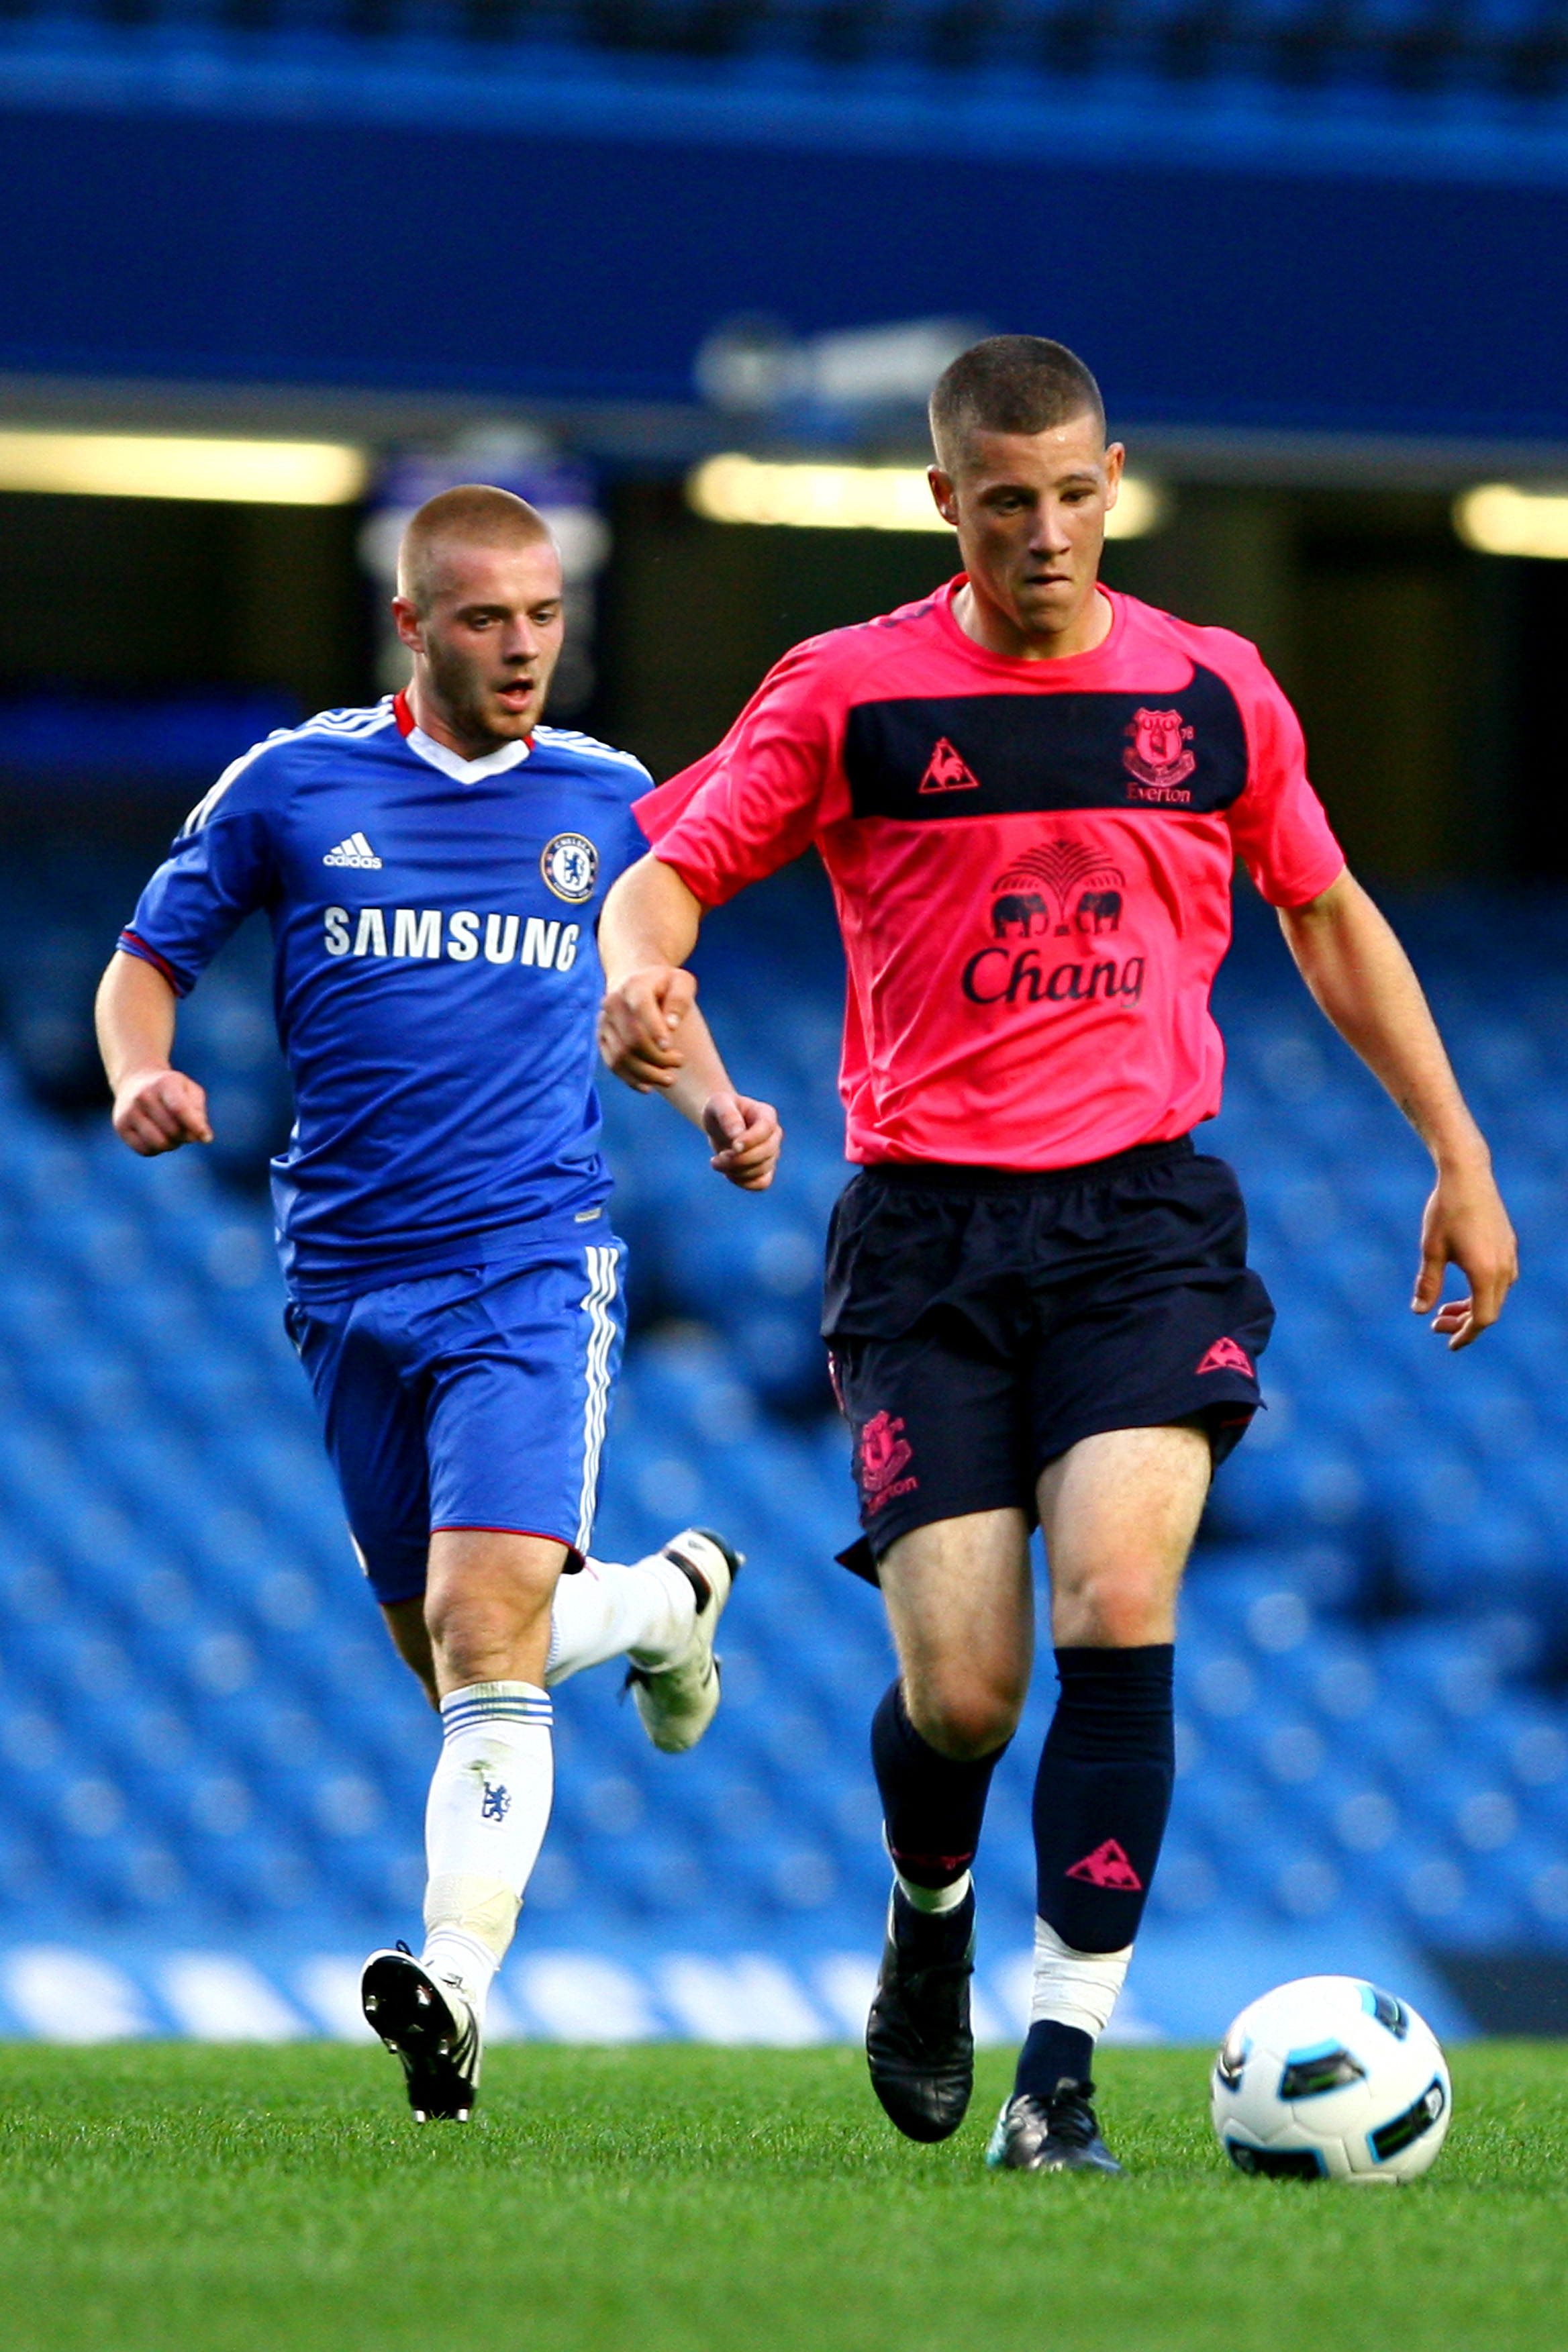 LONDON, ENGLAND - AUGUST 23:  Ross Barkley (R) of Everton Reserves battles for the ball with Connor Clifford of Chelsea Reserves during the Barclays Premier Reserve League match between Chelsea and Everton at Stamford Bridge on August 23, 2010 in London,